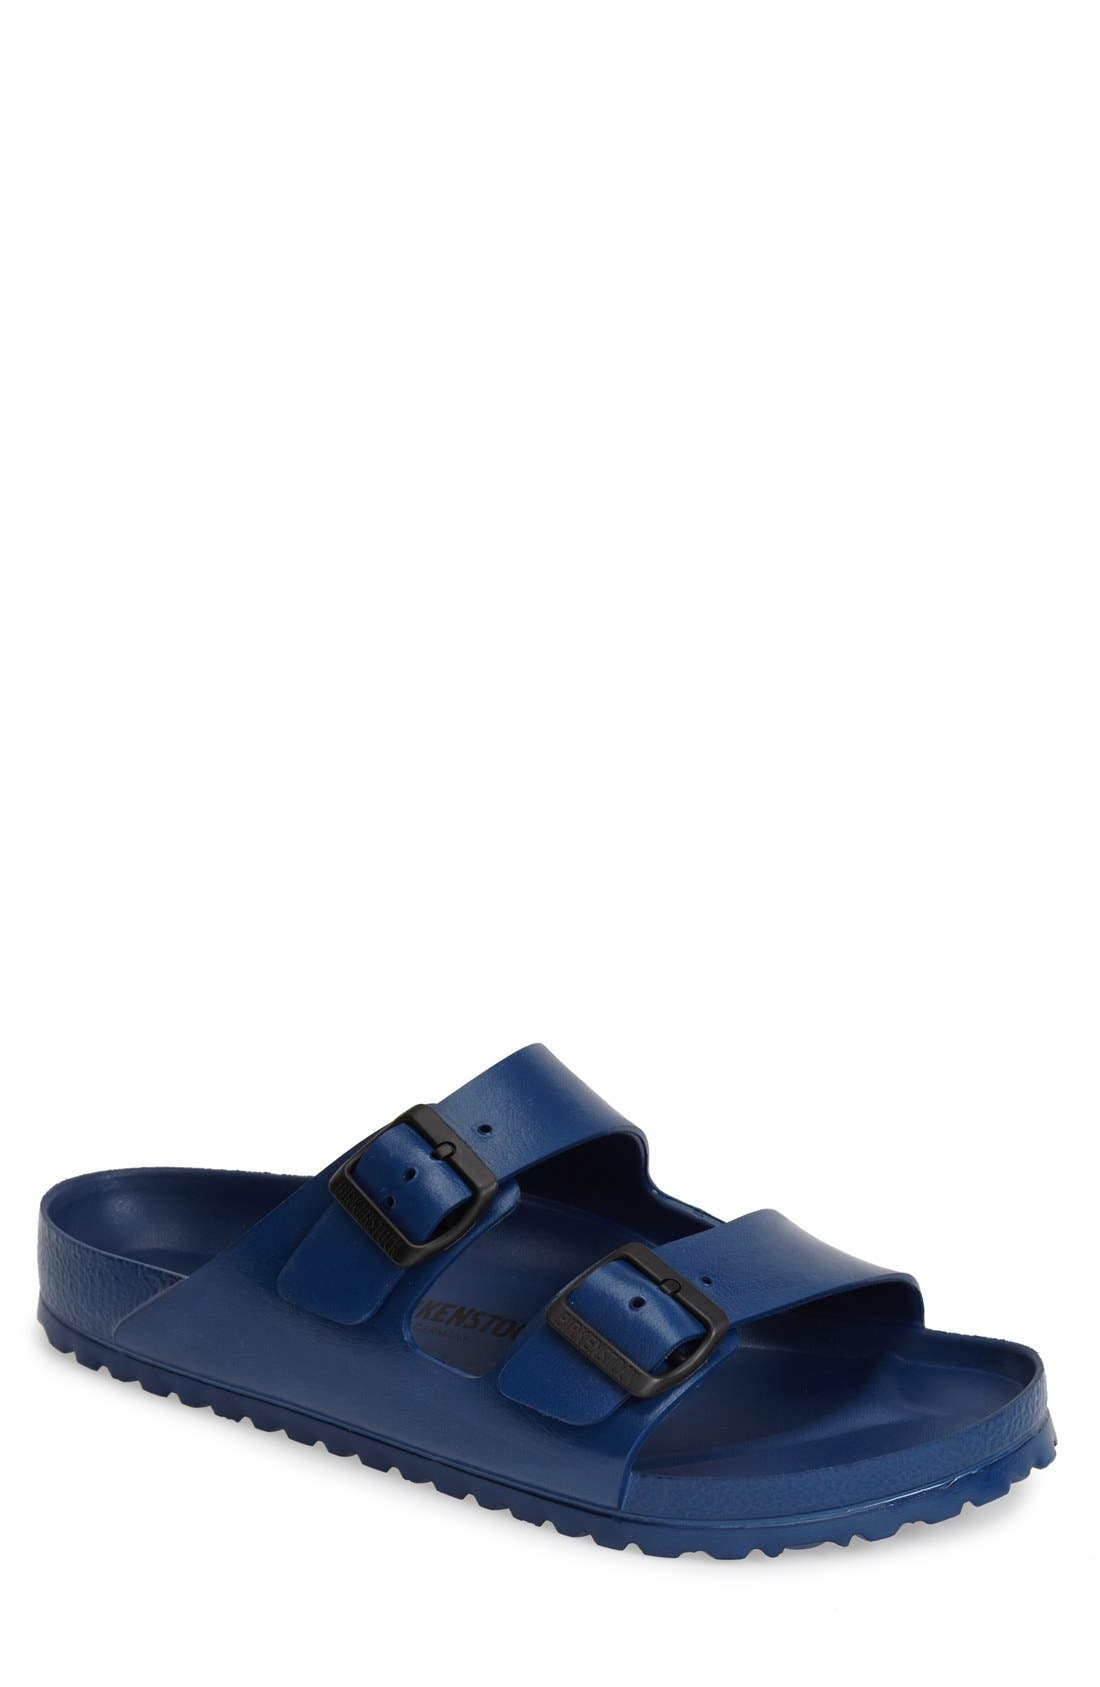 29e60afd2e09 Buy slides shoes mens   OFF70% Discounted